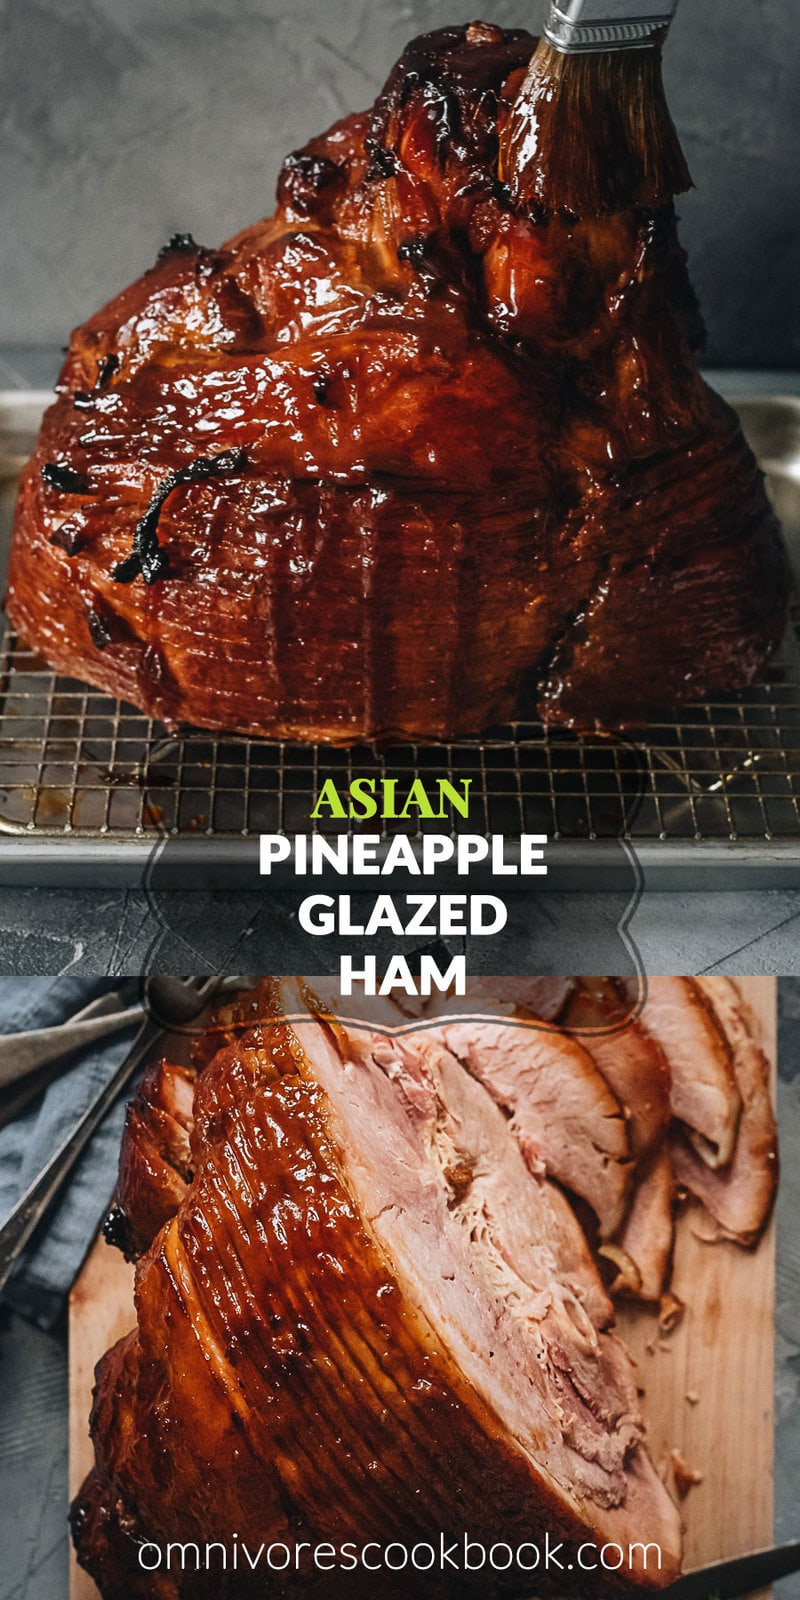 Asian Pineapple Glazed Ham | Try out this easy pineapple glazed ham if you want to make a traditional glazed ham with something new, while staying just as hearty and comforting. The glaze is made from brown sugar and pineapple juice, with a hint of gingery and garlicky taste, just like sweet chili sauce. It is a perfect centerpiece dish for holidays such as Christmas and Easter. {Gluten-Free Adaptable}